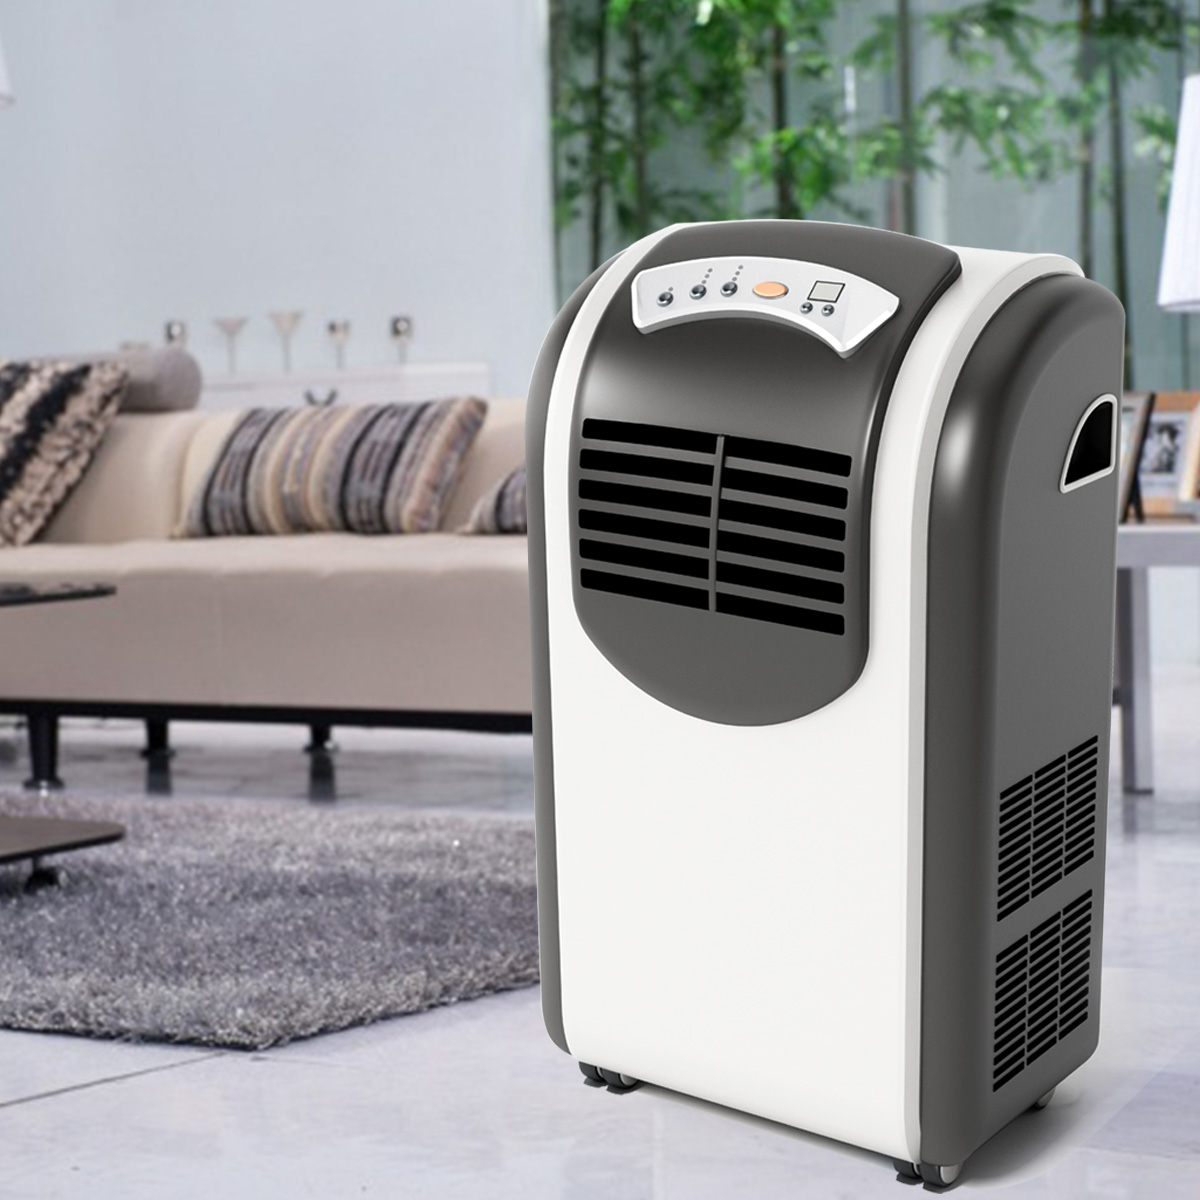 Find the Best Air Purifiers Guide for Home